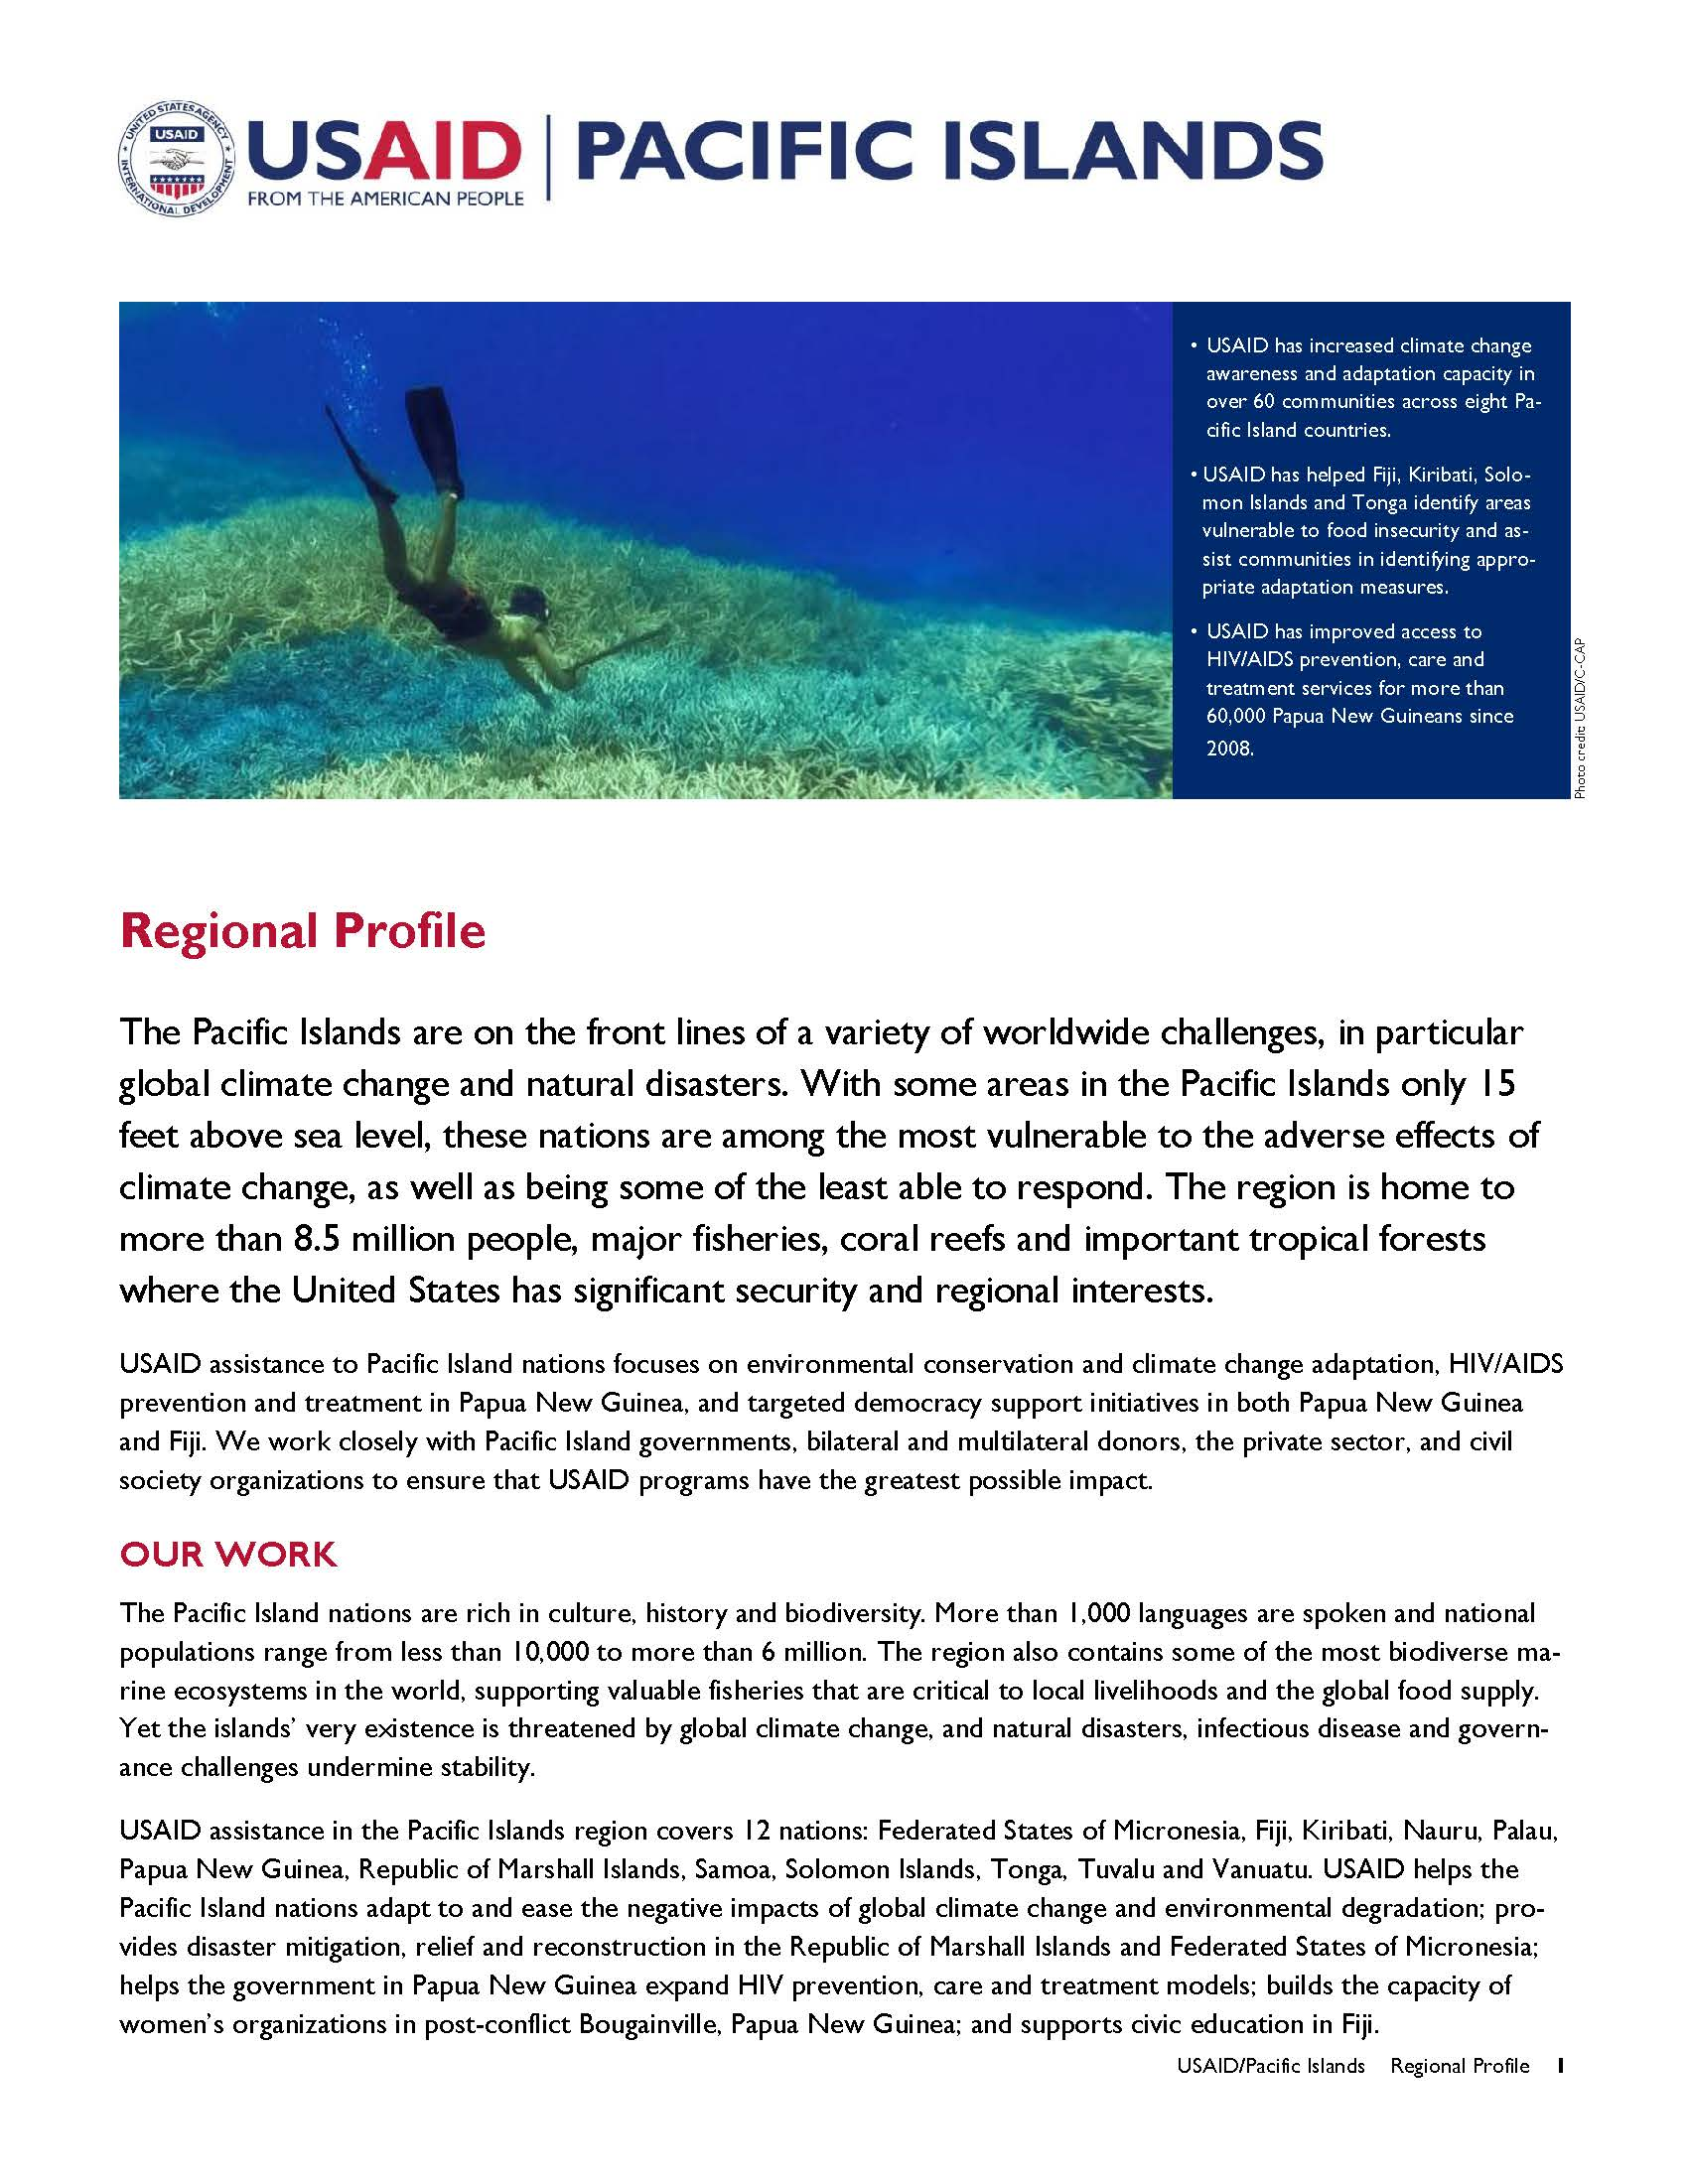 Pacific Islands Regional Profile